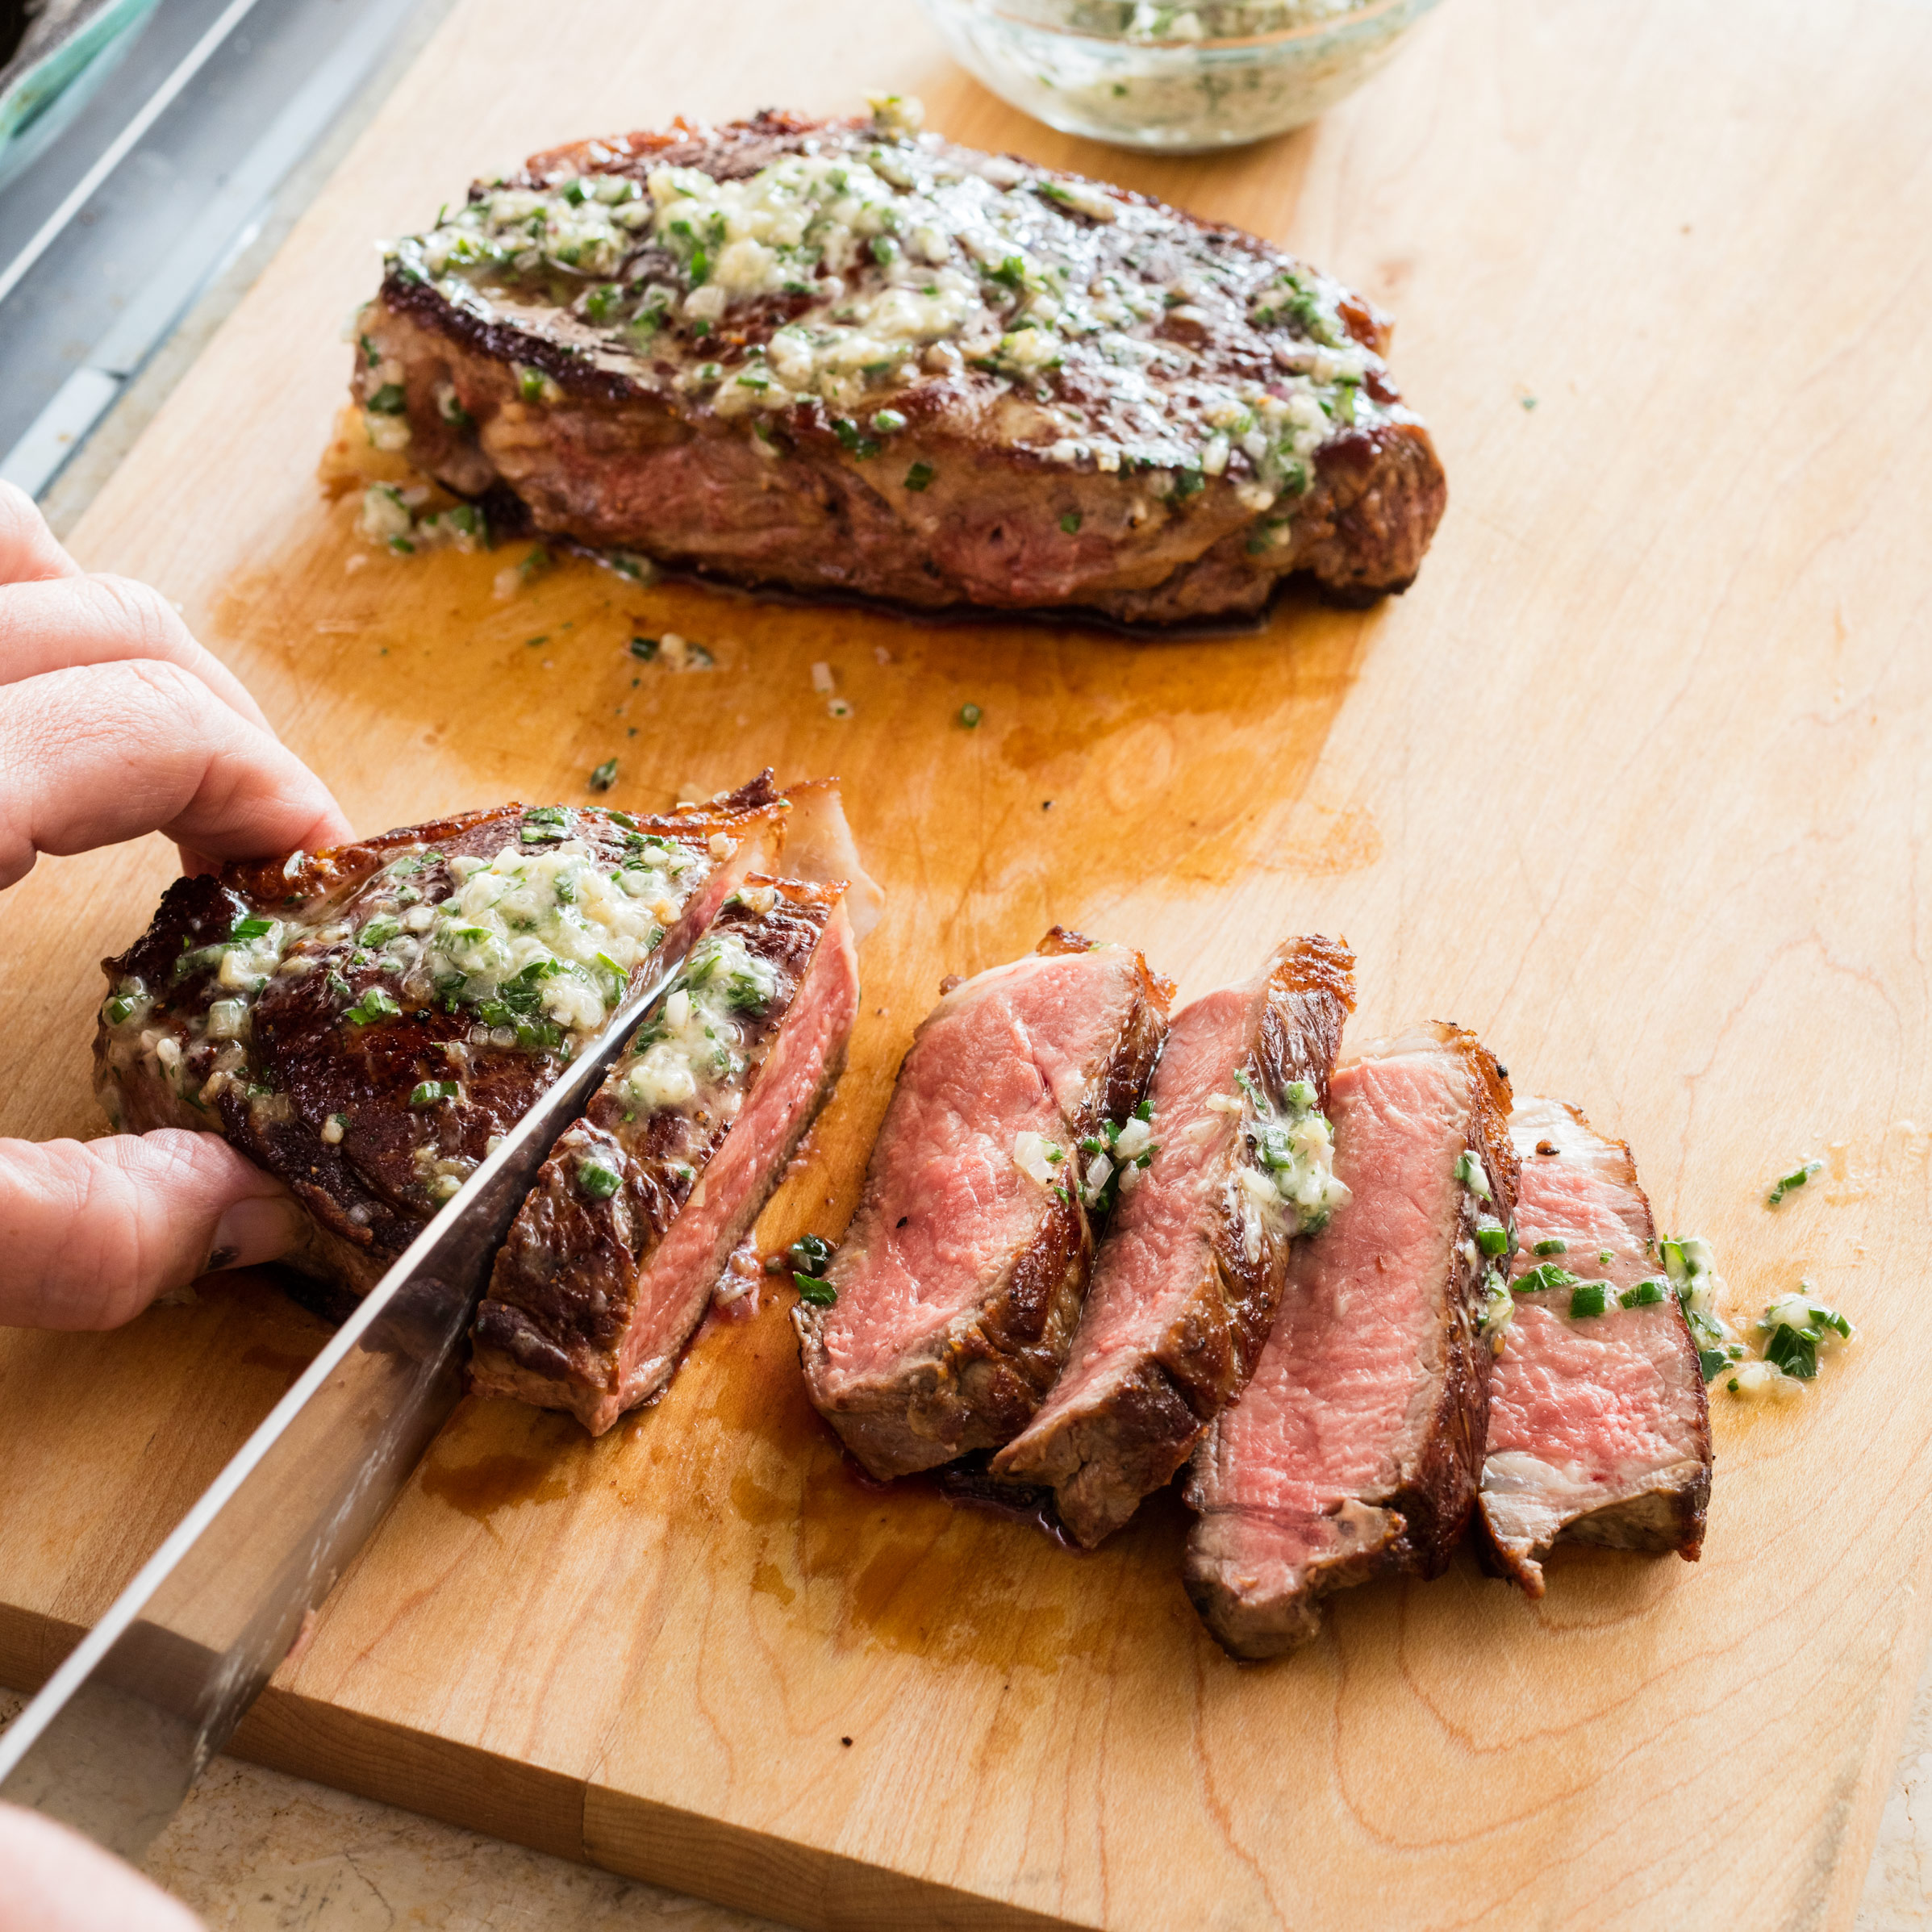 Elegant Sfs Thick Cut 20steaks 20with 20herb 20butter 034 Cowboy Butter Recipe Ree Drummond Cowboy Butter Ken Recipe nice food Cowboy Butter Recipe